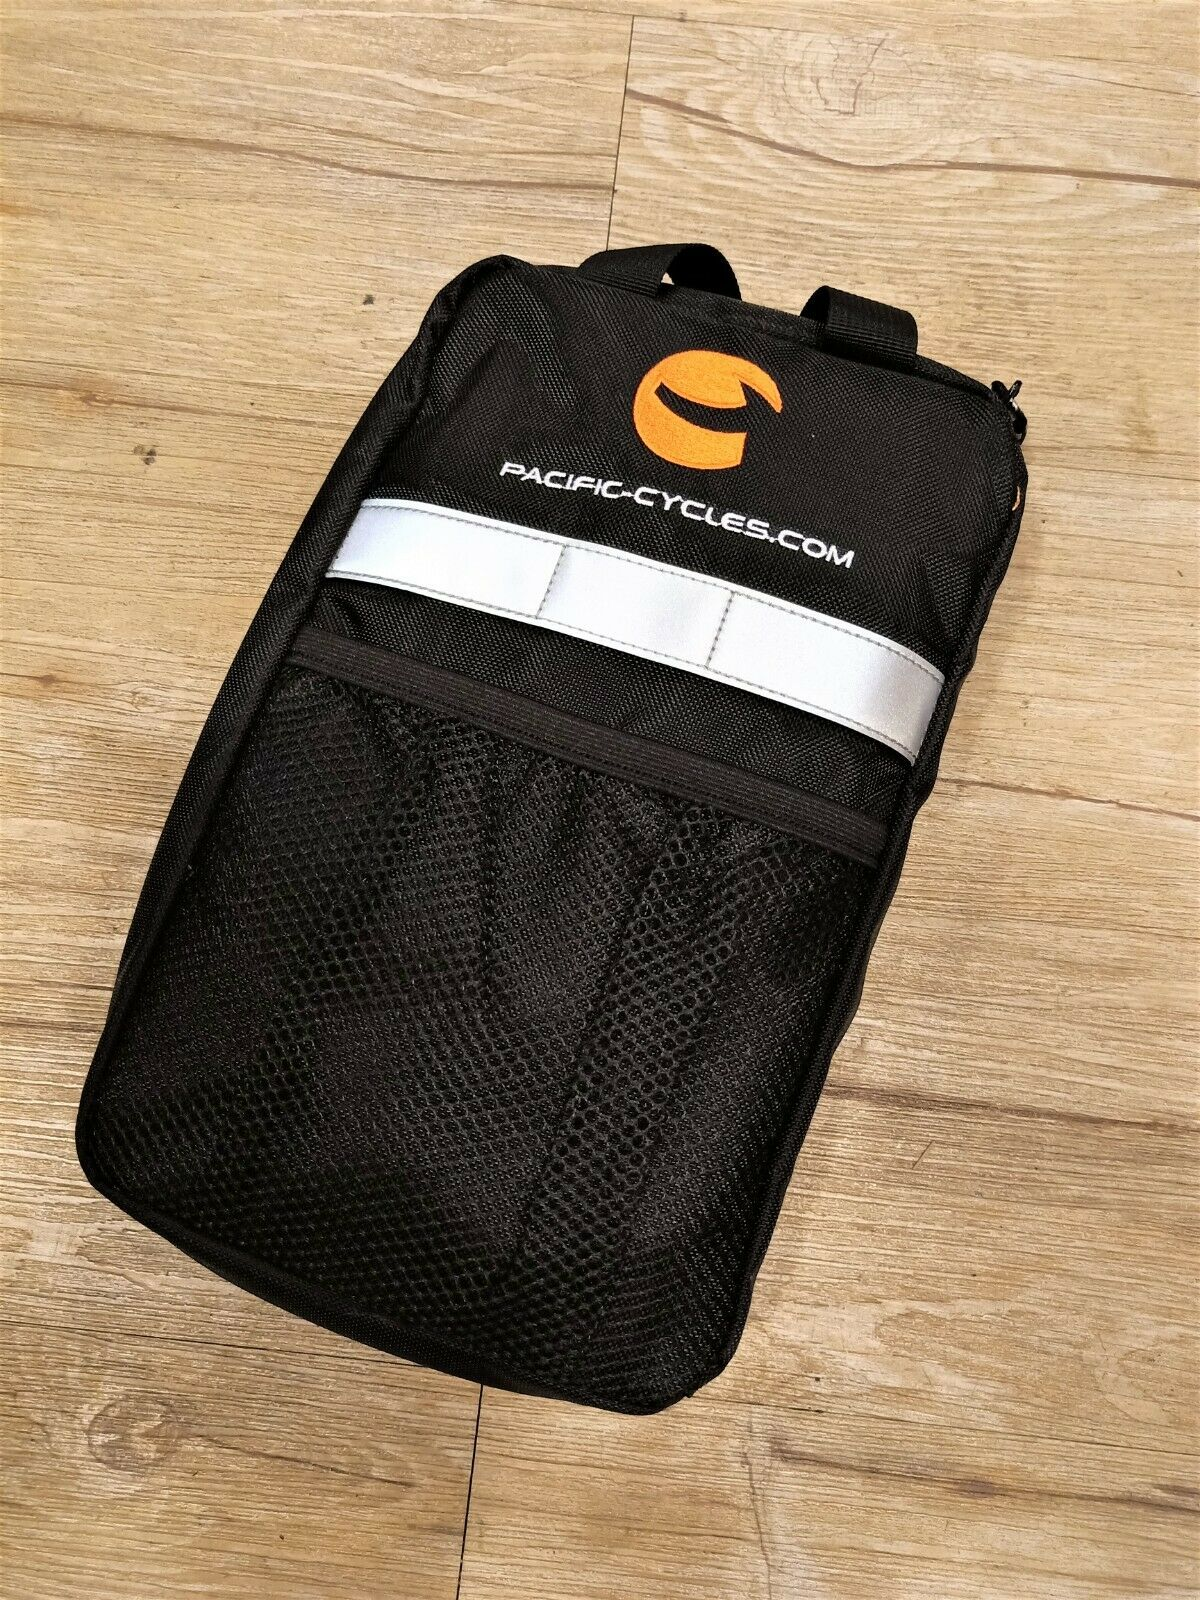 Carryme Carry Bag for Carry me folding bike